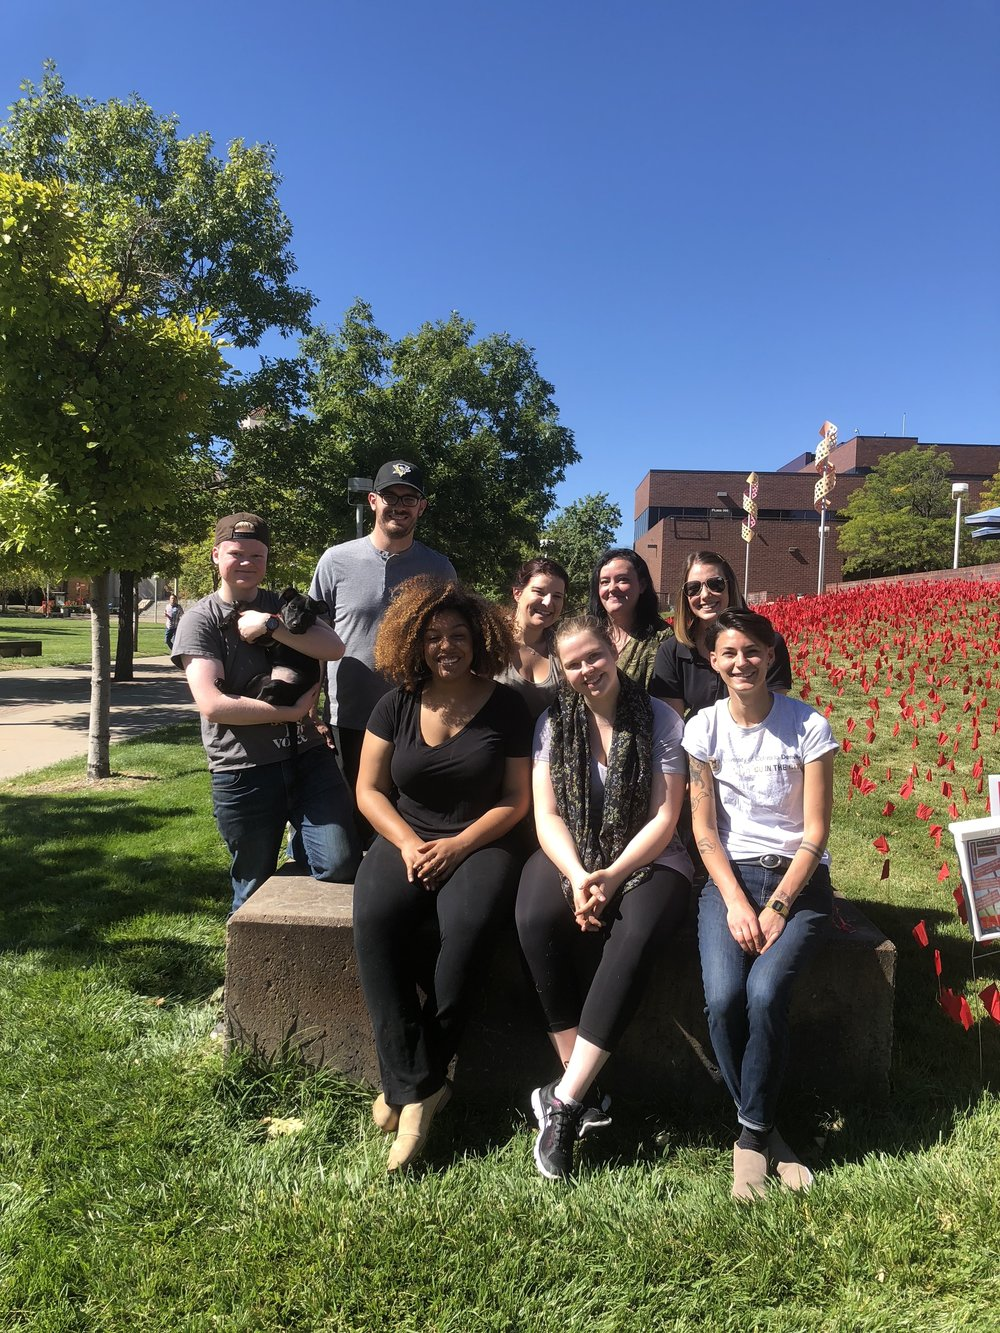 Teamwork! - Some of our staff & volunteers who were able to help us set up our installation this year!Left to right: Top - Sid Nelson (Lead VPE), Bug Amoa-Awuah (PCA Rookie Pup of the Year), Joe Matz, Megan Alpert (PCA Director), Jenae McCall (VPE), Olivia Feldkamp (CU Denver Conduct Educator) Bottom - Elizabeth Amoa-Awuah (VPE Coordinator), Abby Pierce (VPE), Taylor Bergeron (Business Services Coordinator)2018.